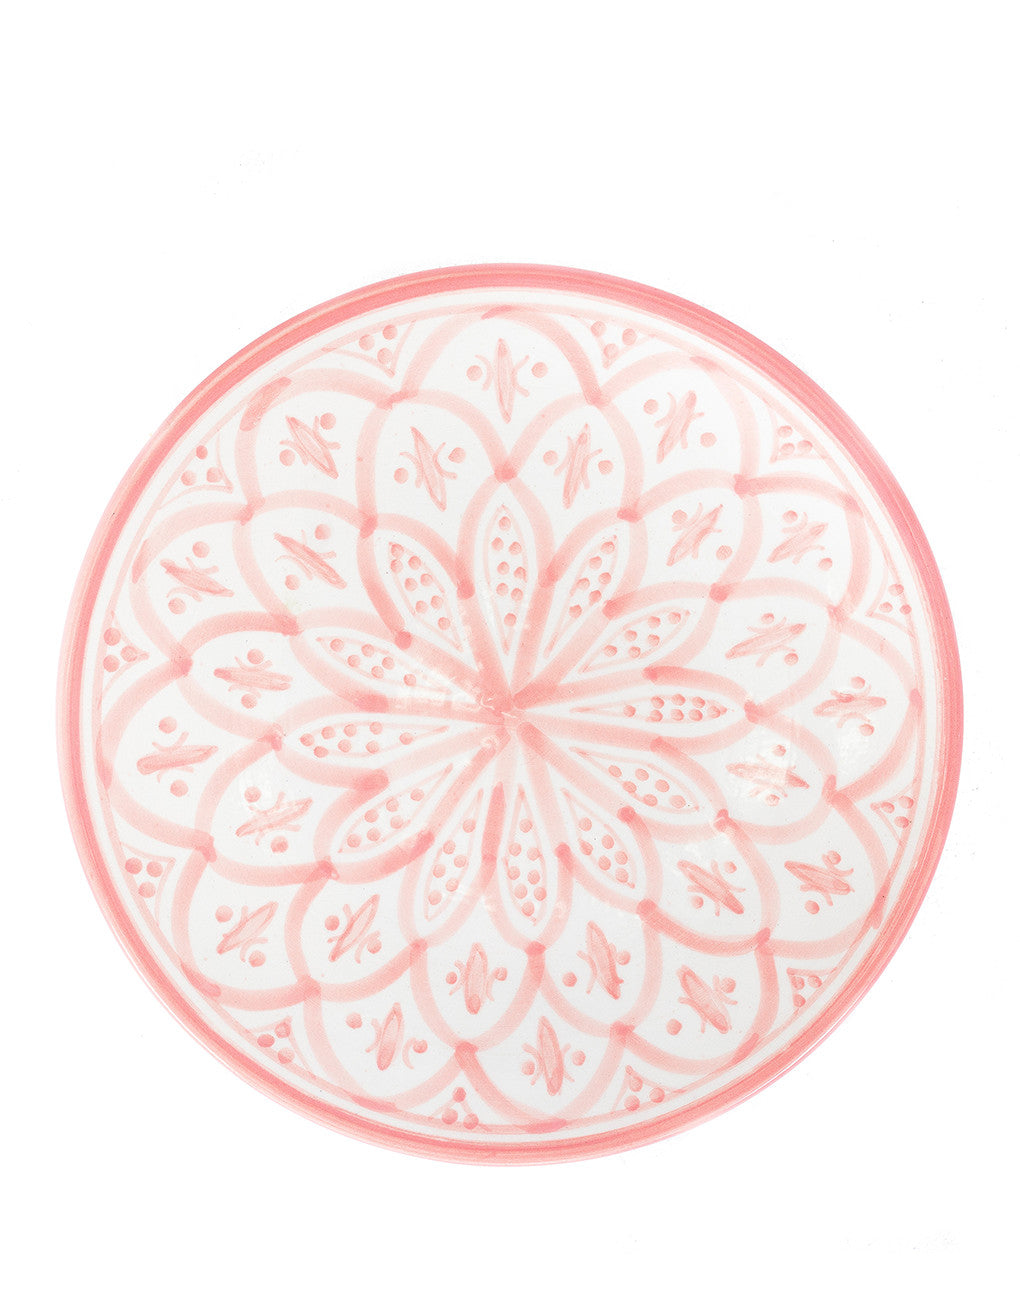 Ceramic Dinner Plate - Blush | The Little Market